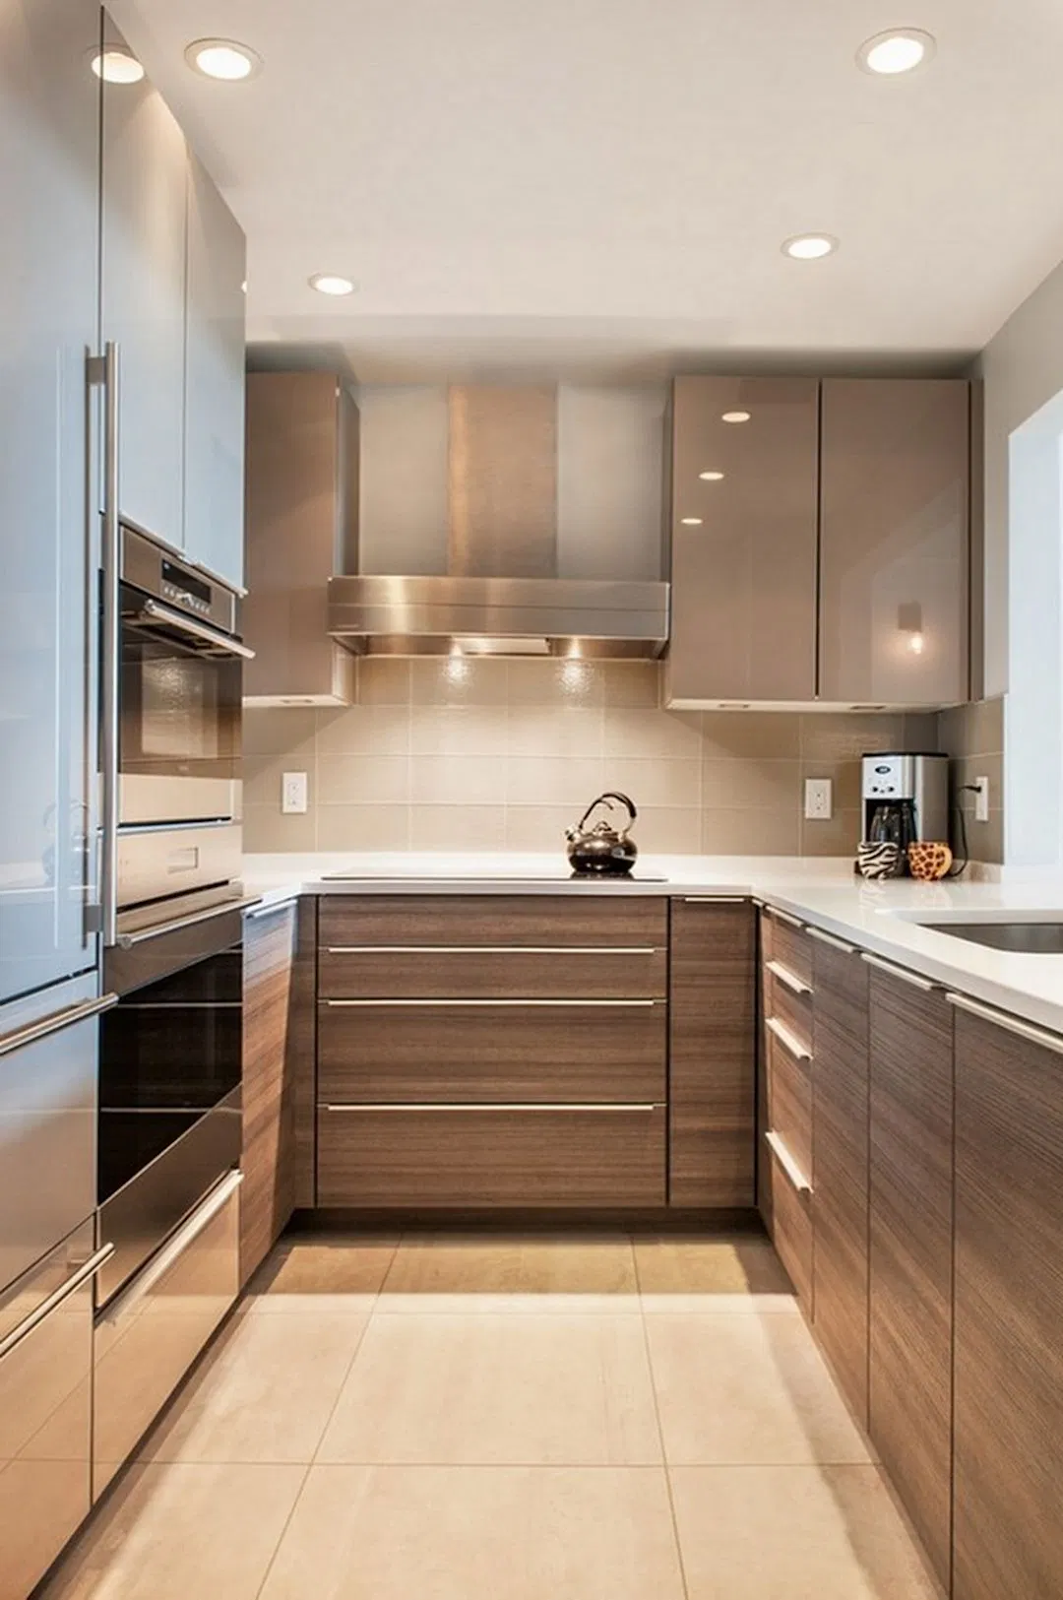 NOW TRENDING Minimalist kitchen design. See our top 9 picks for ...